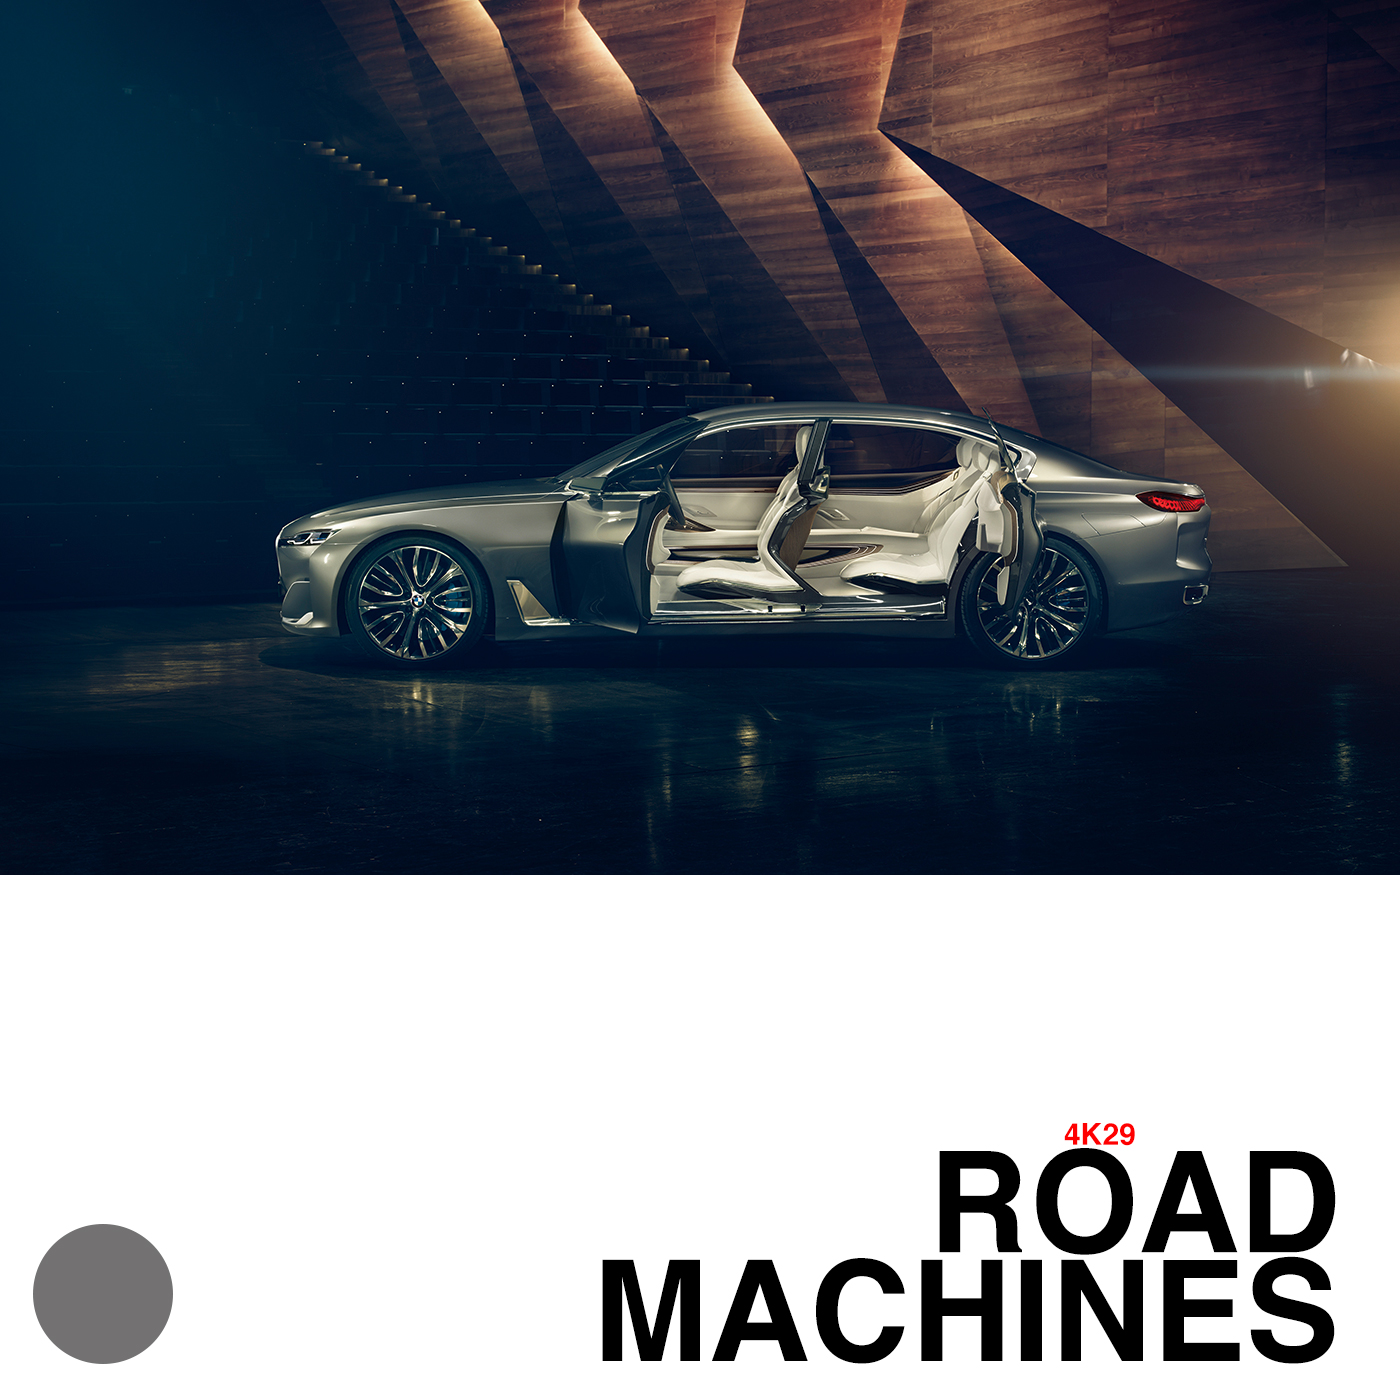 ROAD MACHINES 4K29